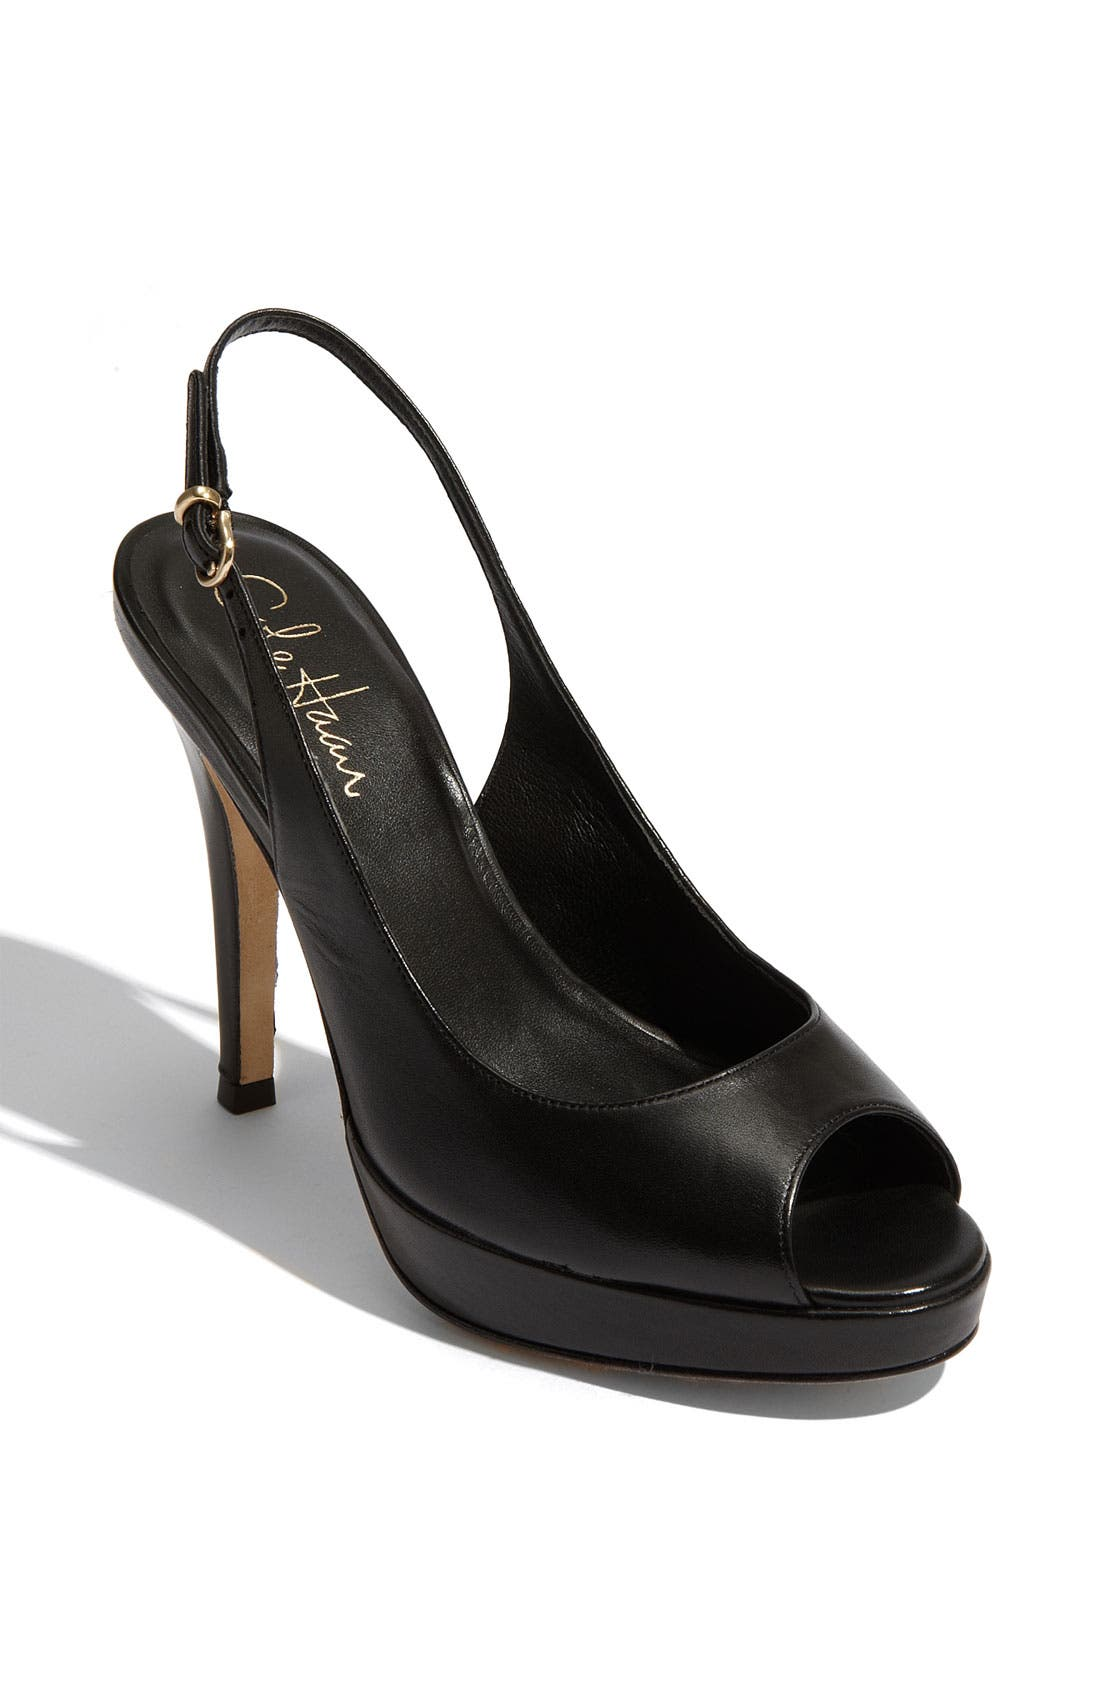 Alternate Image 1 Selected - Cole Haan 'Air Stephanie' Slingback Pump